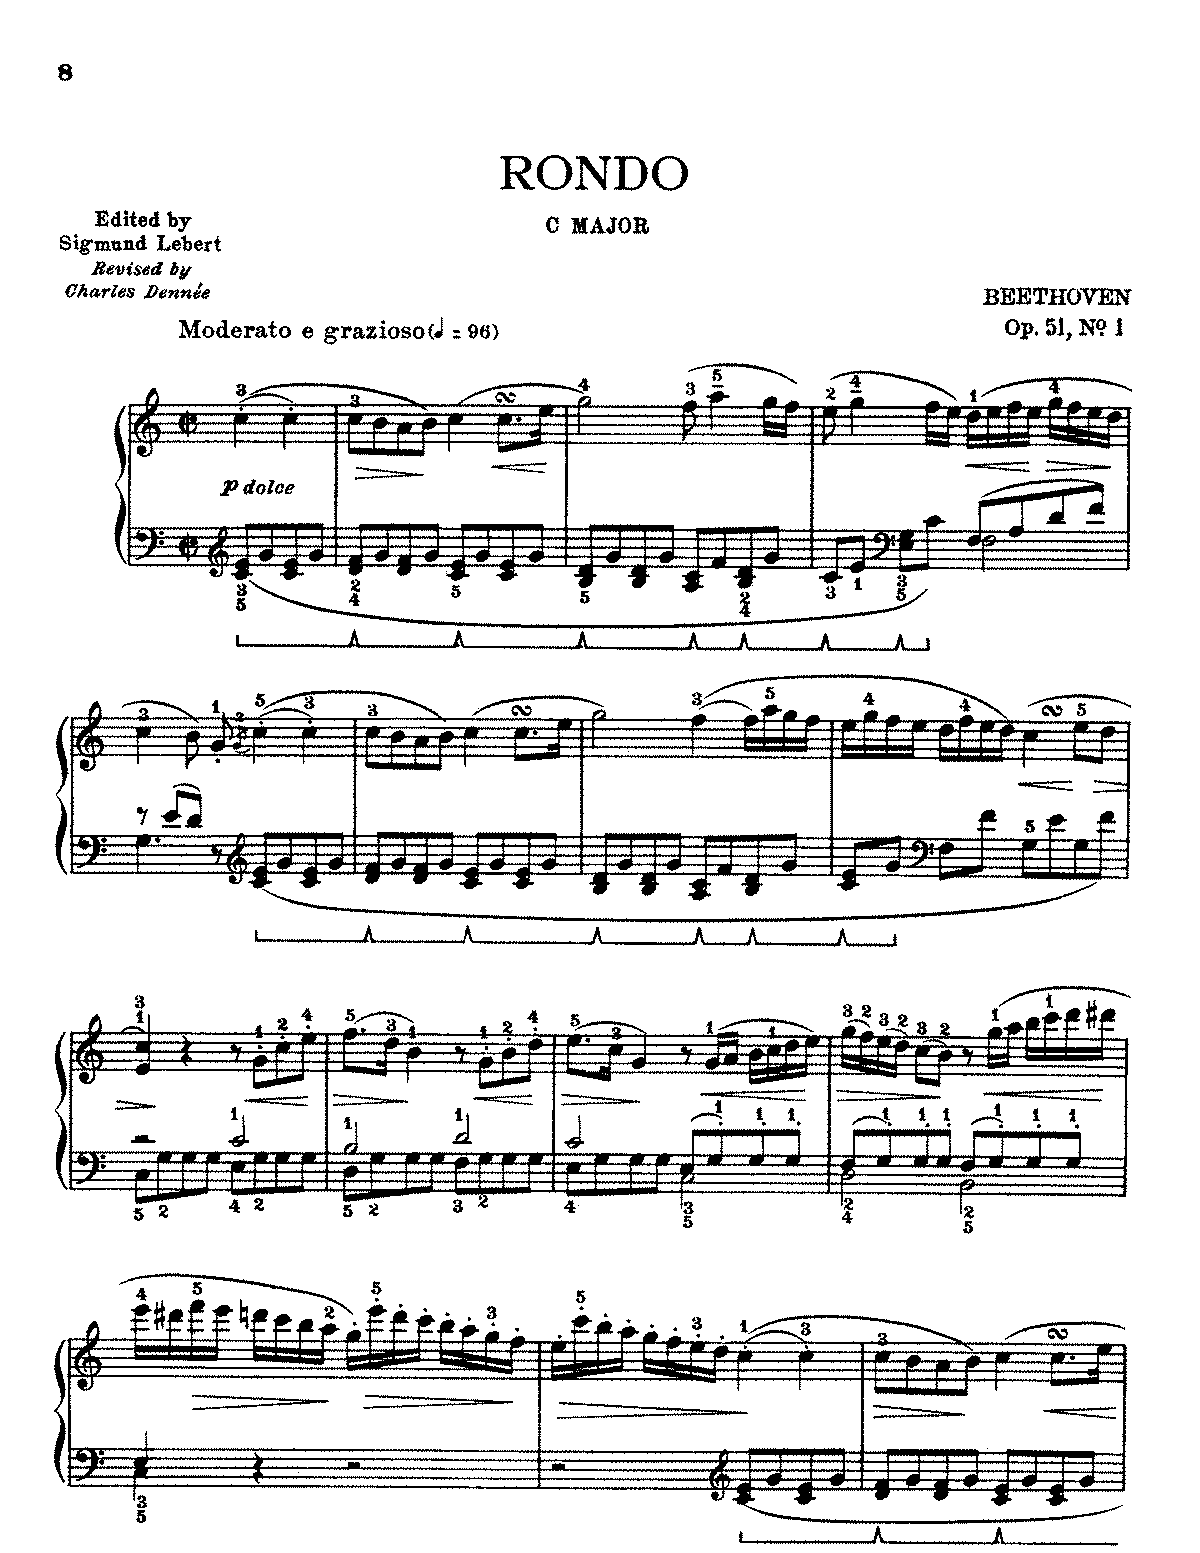 PMLP44645-Beethoven - Op.51, No.1, Rondo in C major.pdf